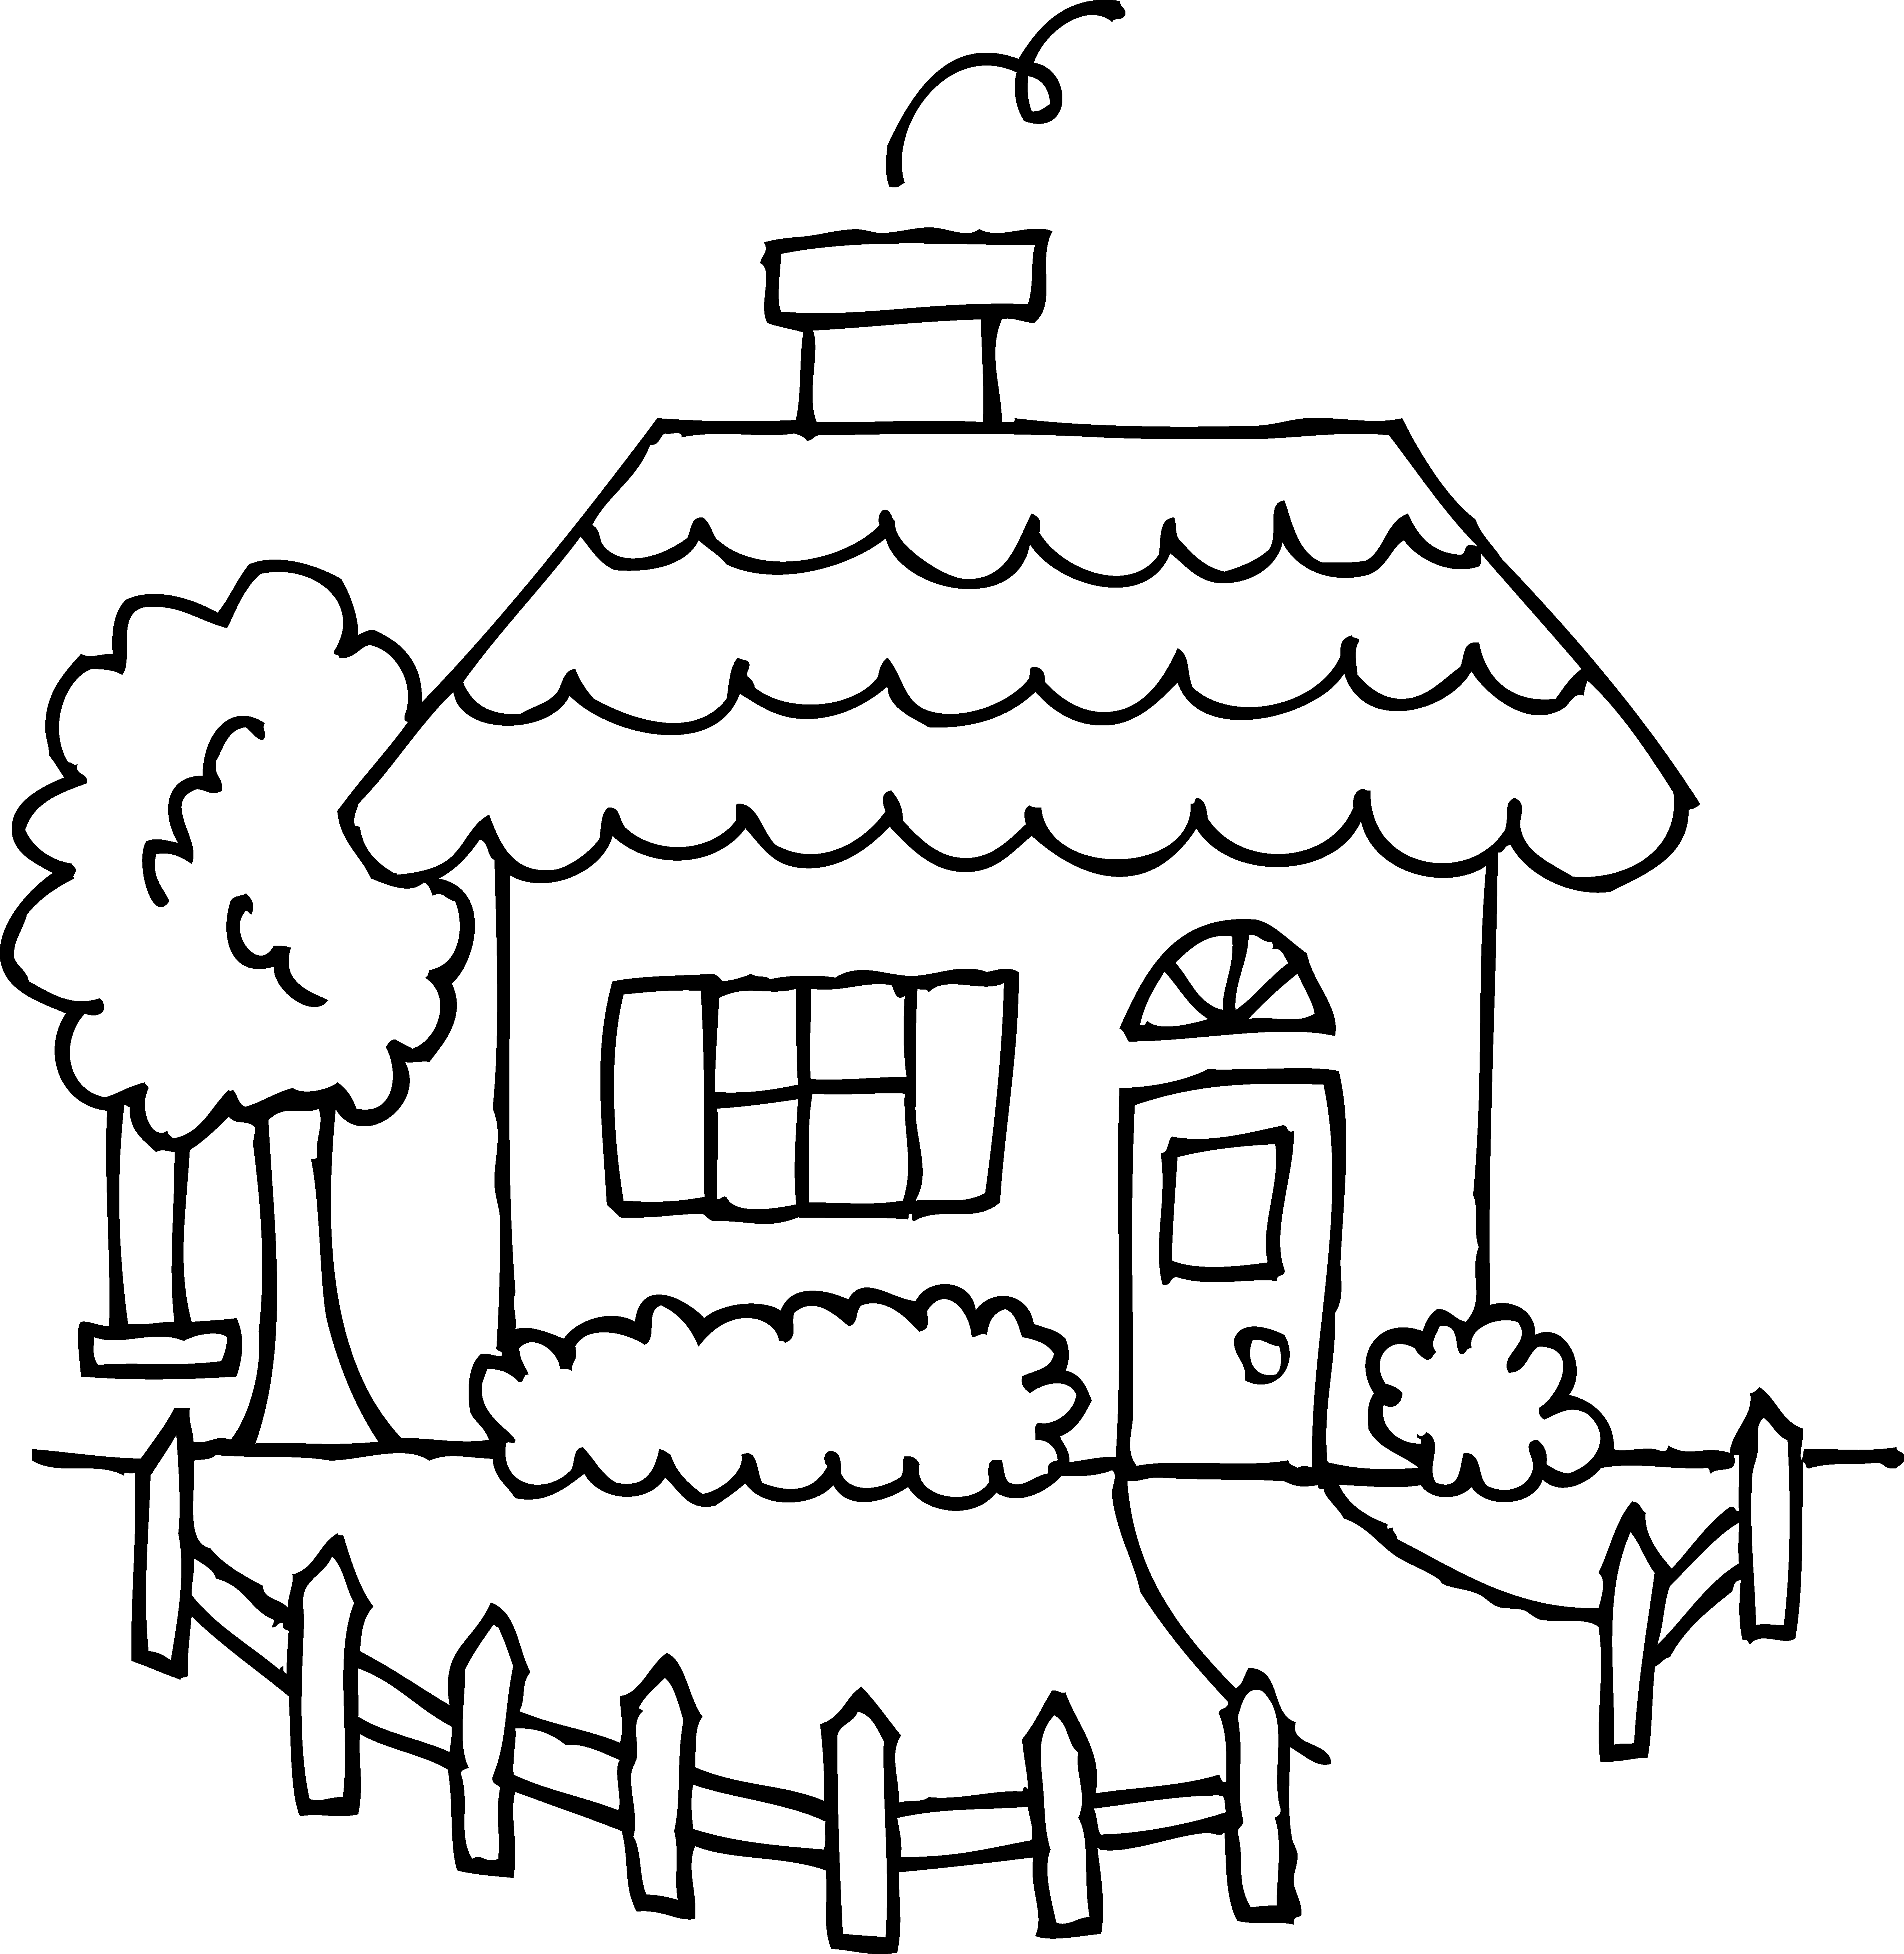 Free Black House Cliparts, Download Free Clip Art, Free Clip Art on.